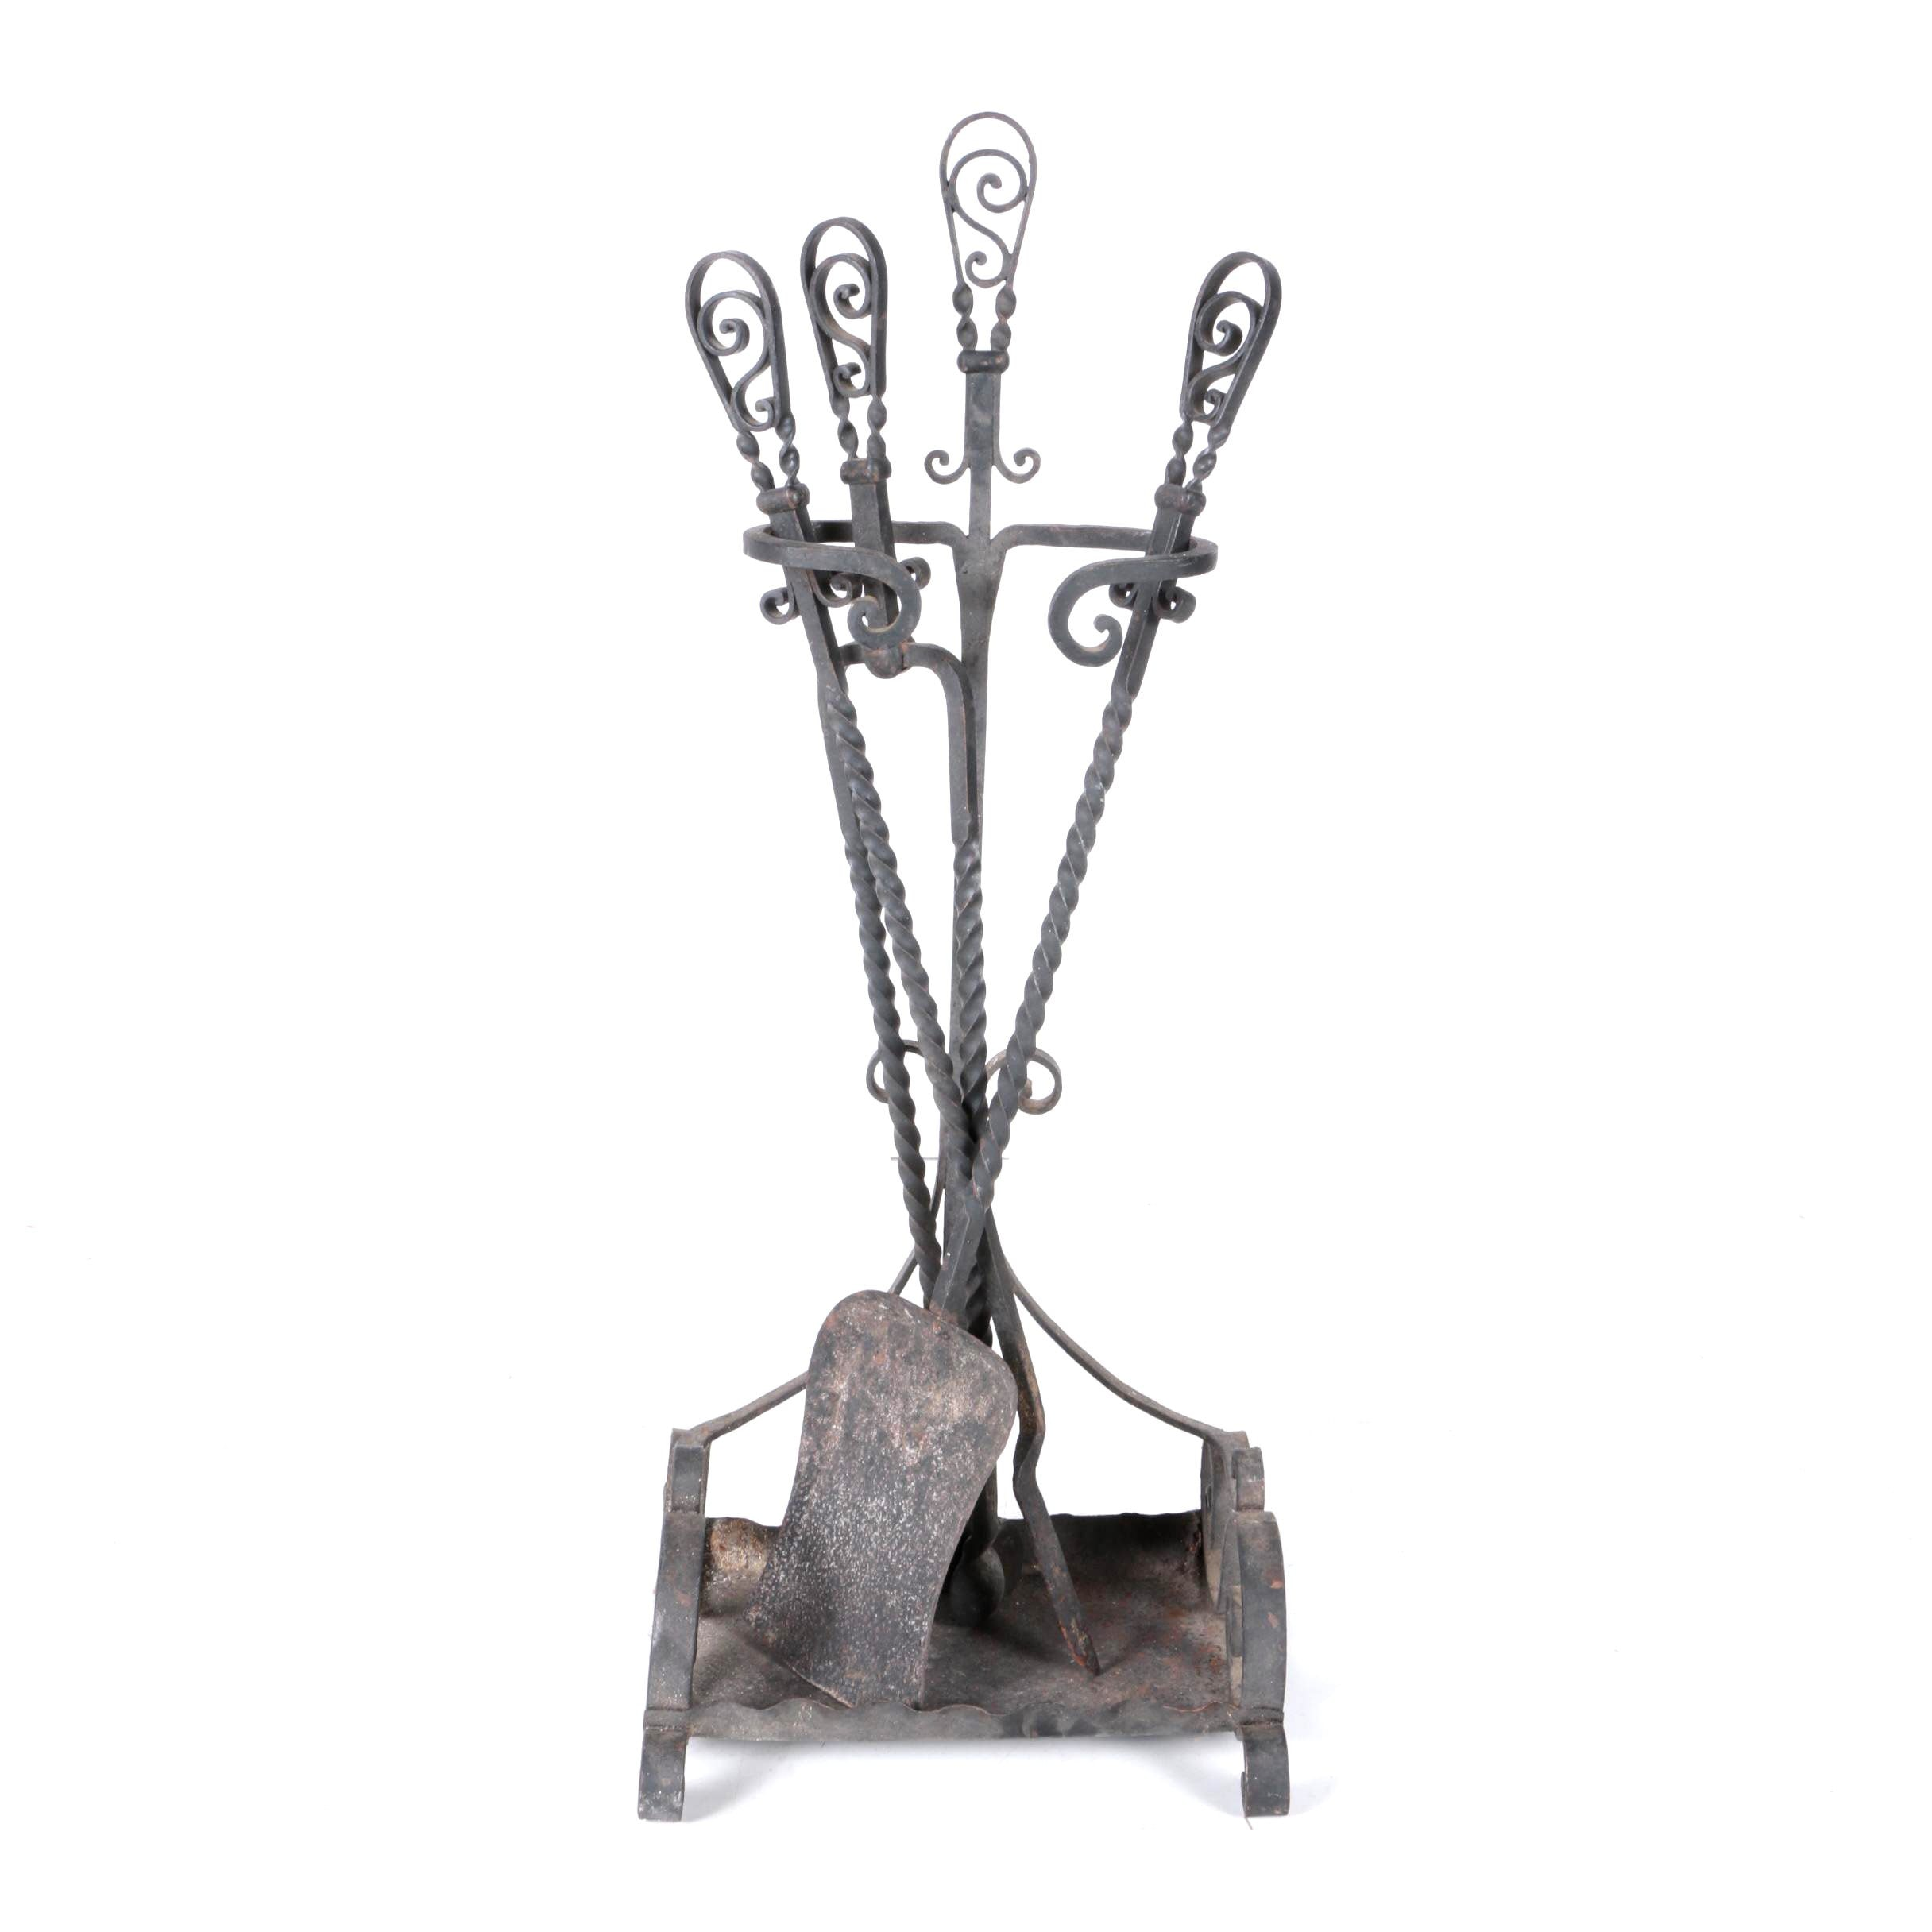 Wrought Iron Fireplace Tools and Stand